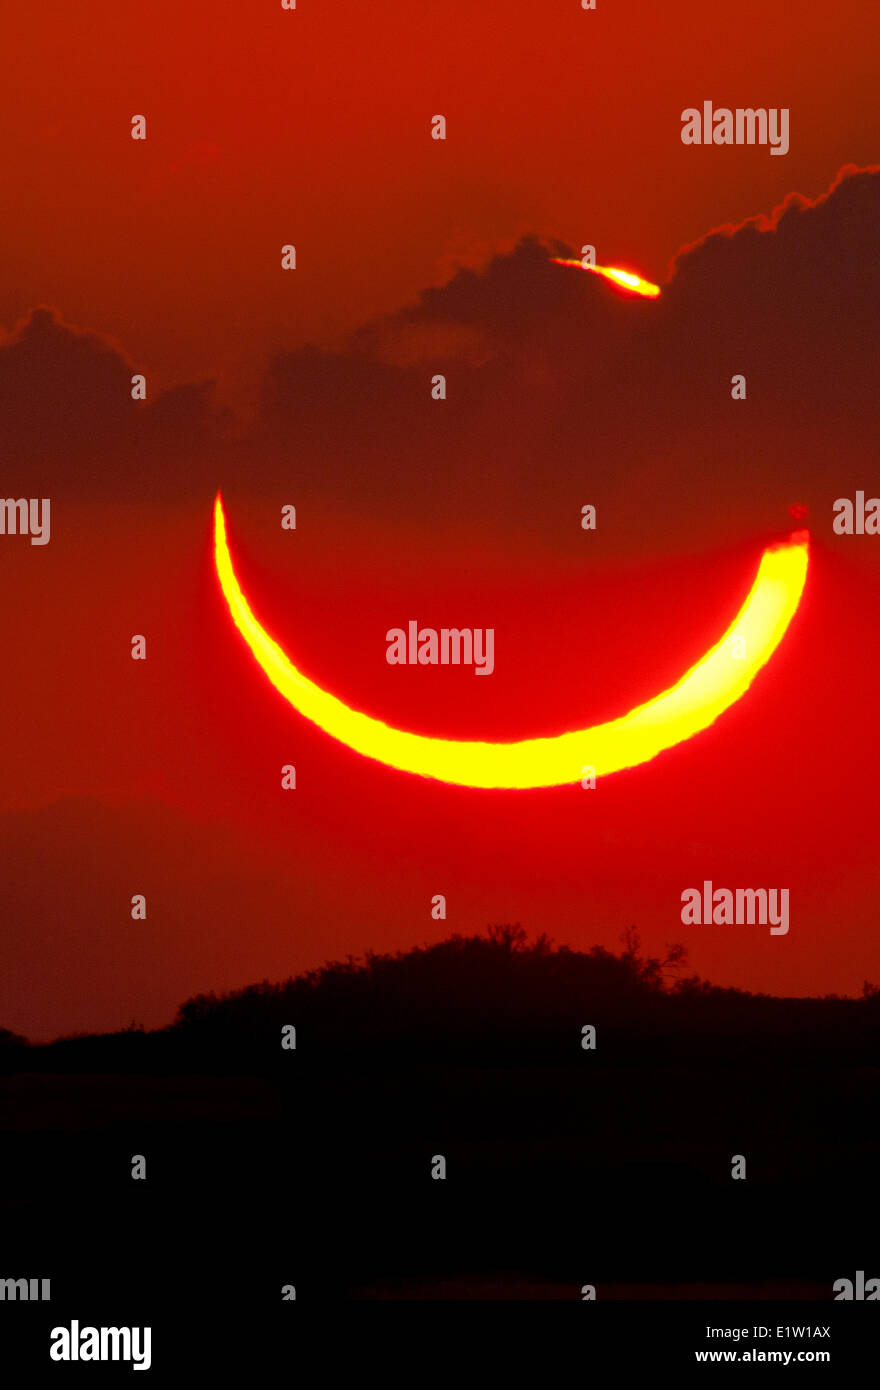 Annular solar eclipse of May 20th 2012. Photographed at sunset from western Texas. - Stock Image